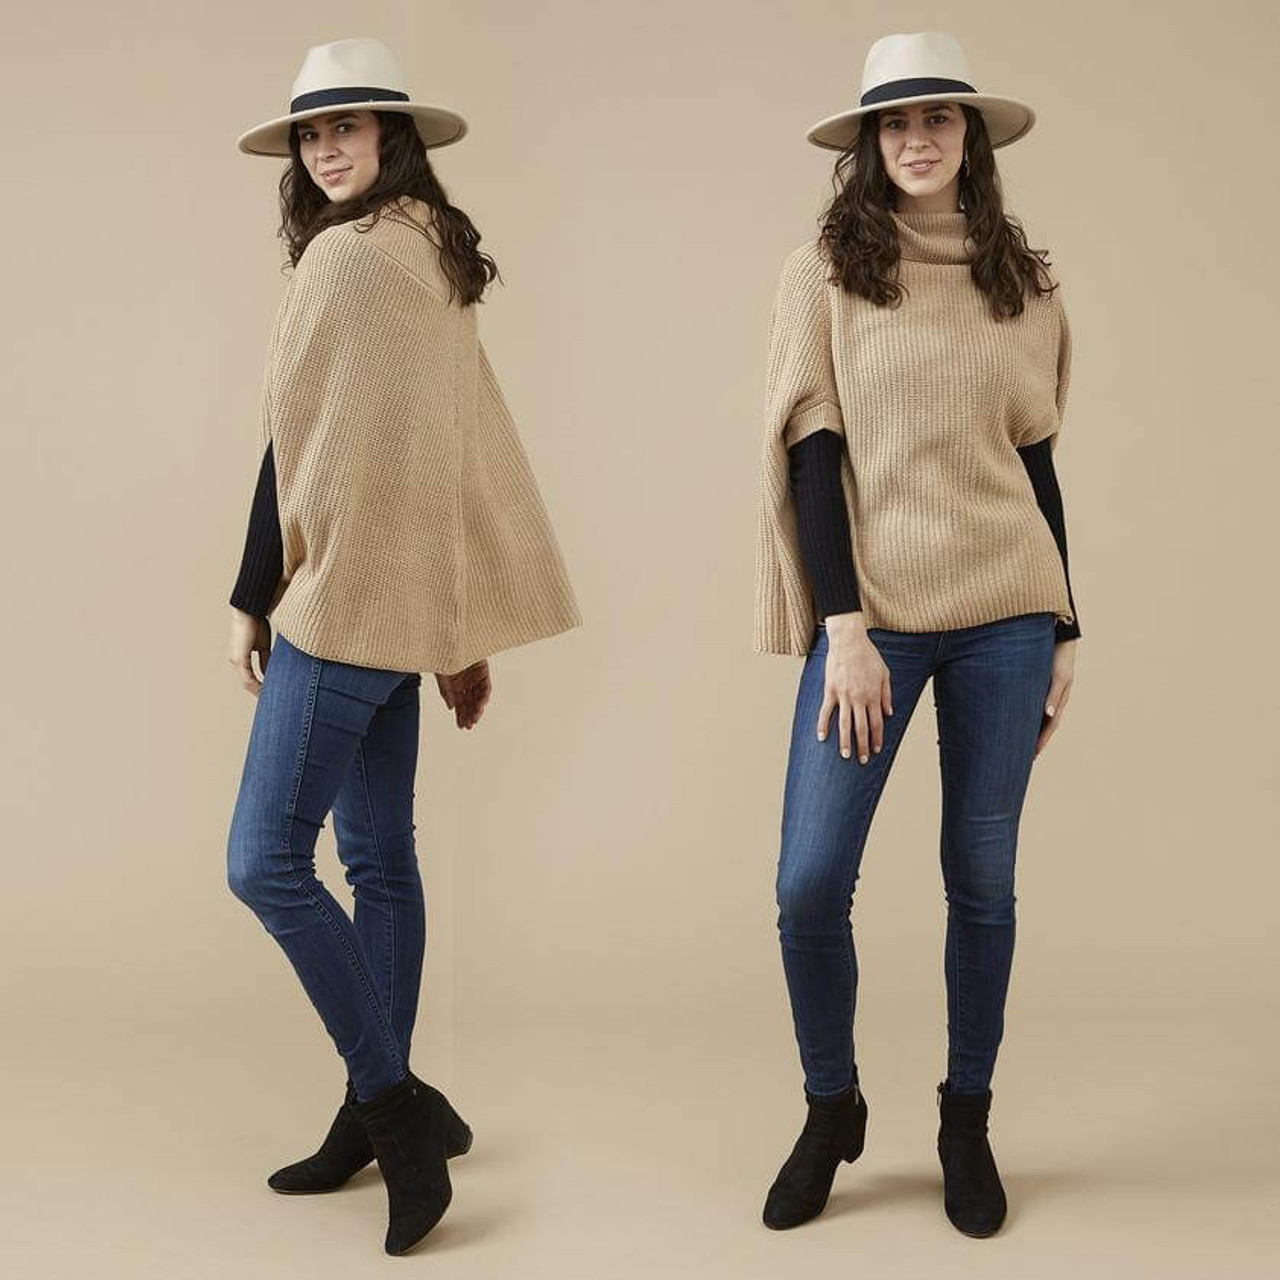 This modern sweater knit khaki Victoria poncho is perfect for the office, a day of shopping, or even date night. The neutral color and effortless style will have you looking chic and feeling warm wherever you go. One size fits most.